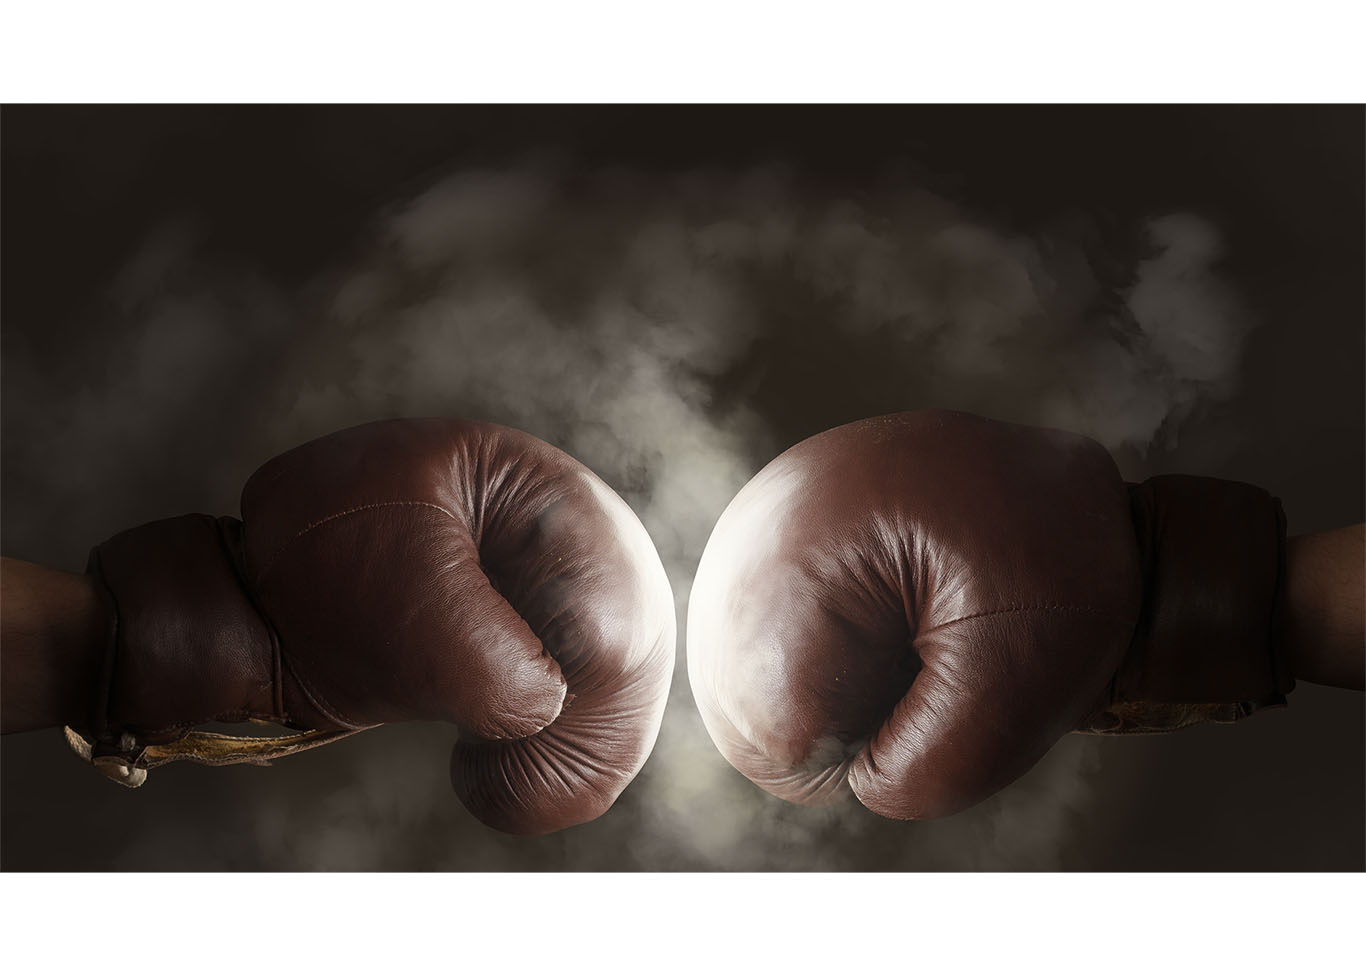 two boxing gloves meeting in a punch and emitting dust with a dark background